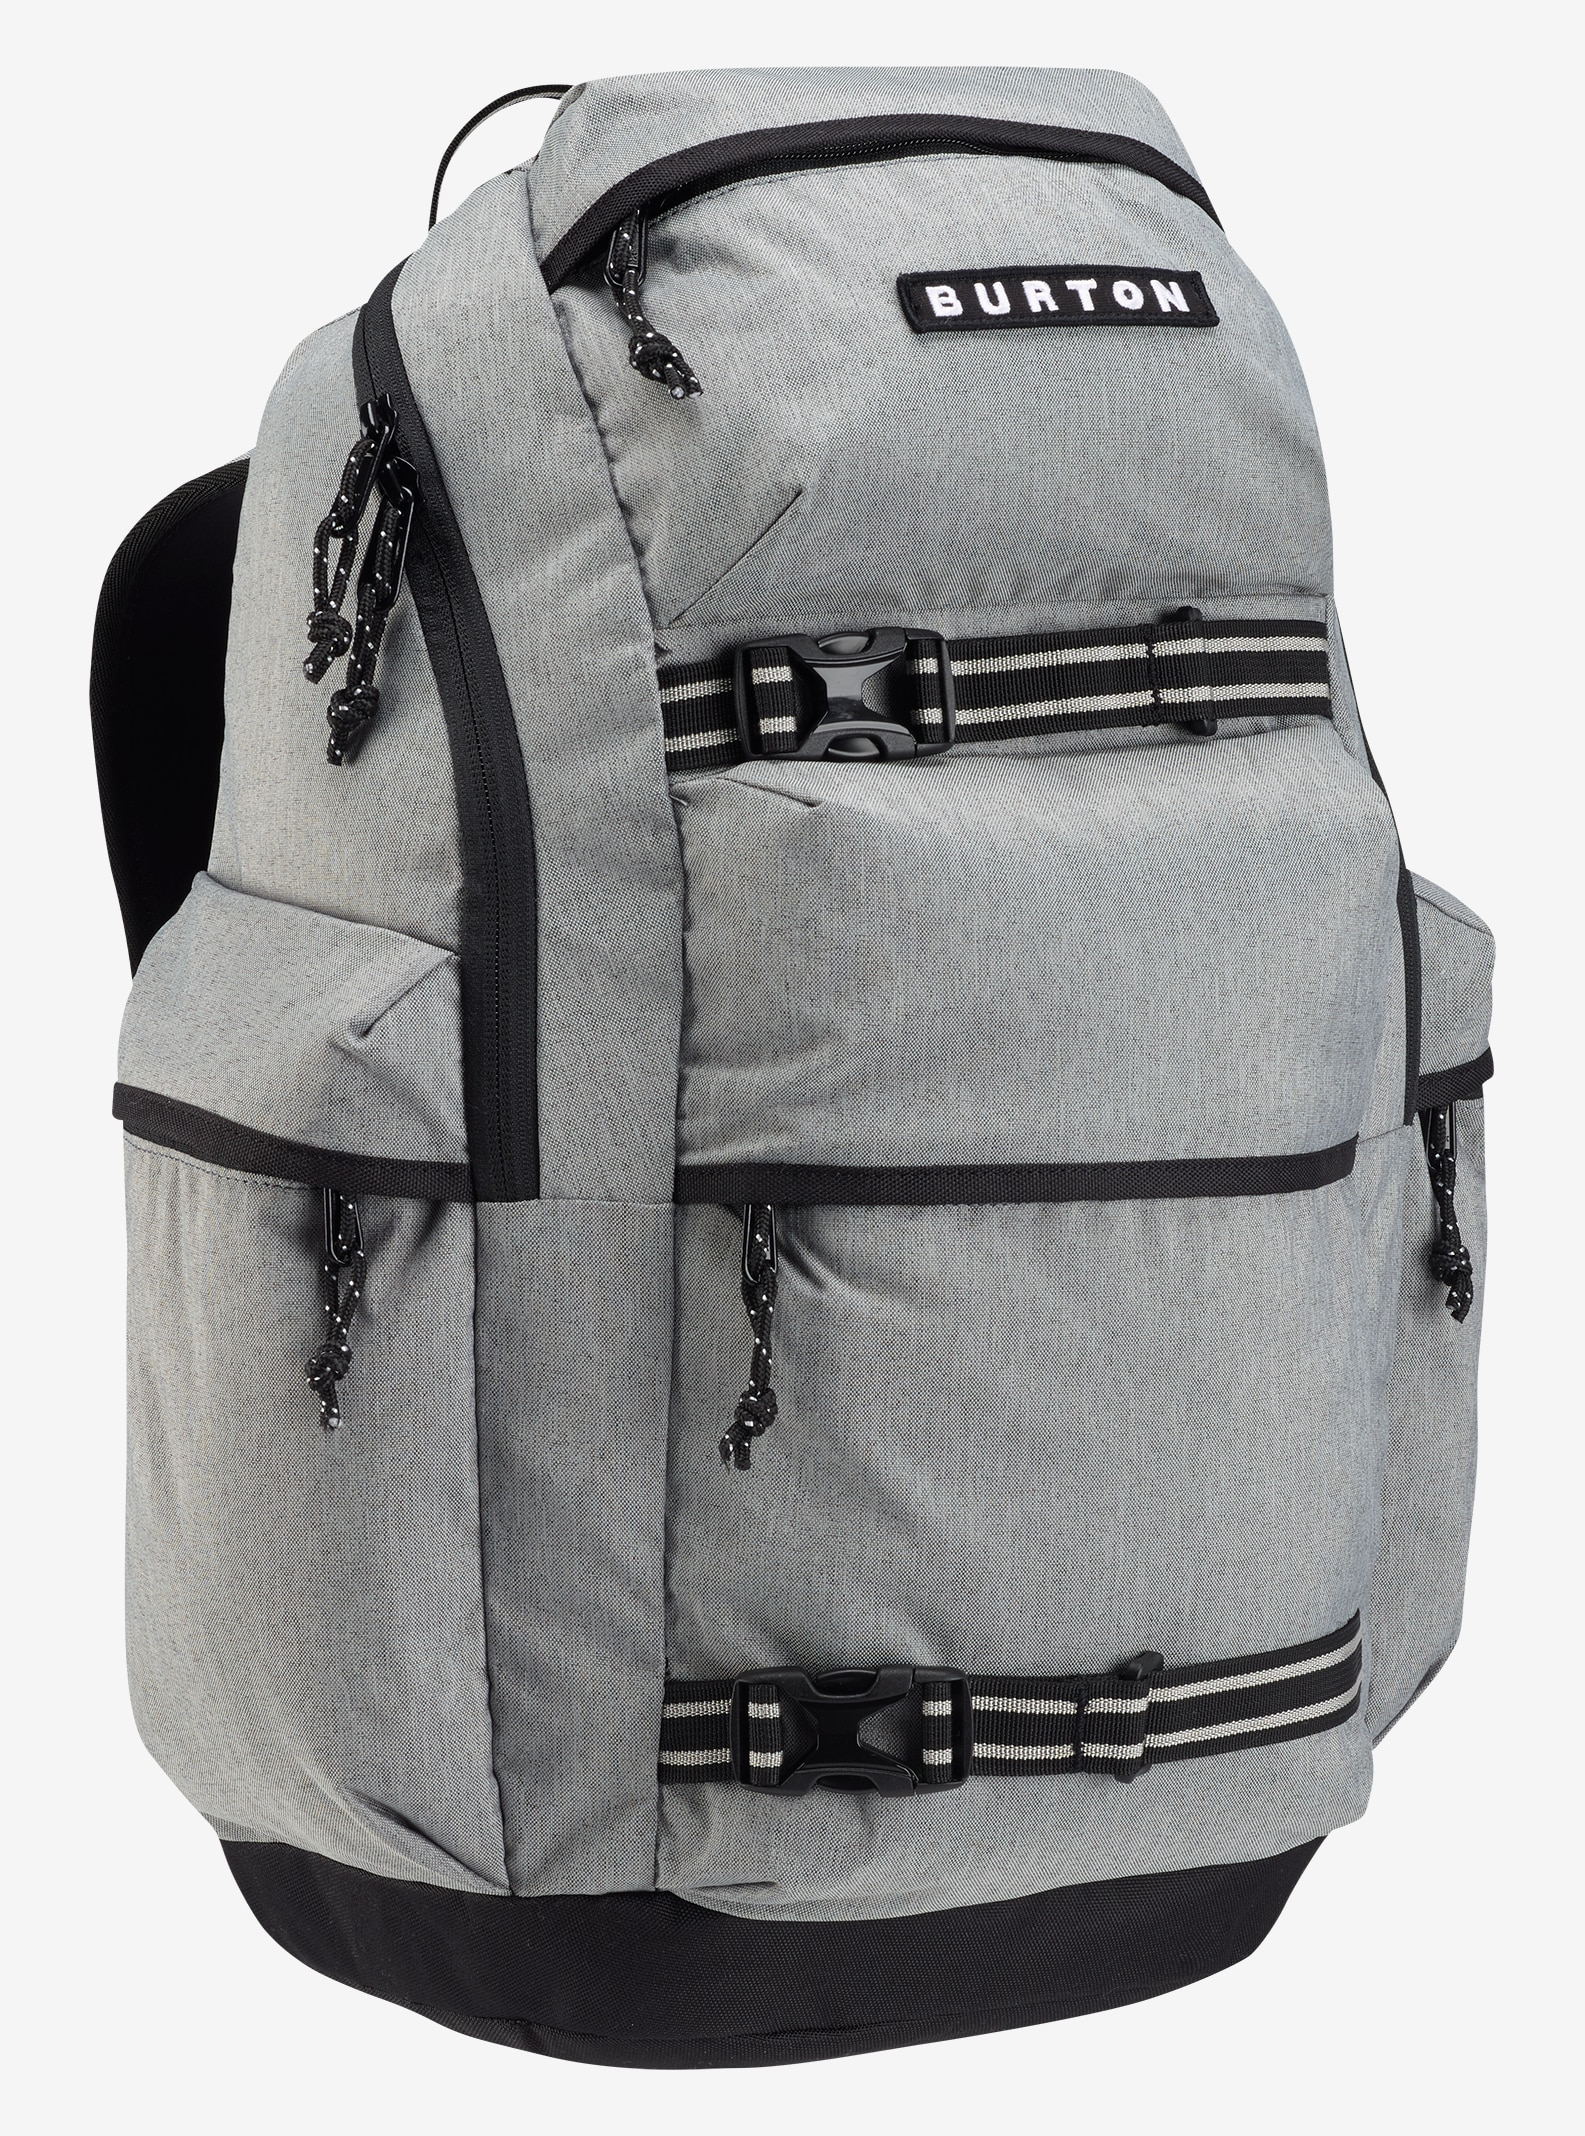 Burton Kilo Backpack shown in Grey Heather